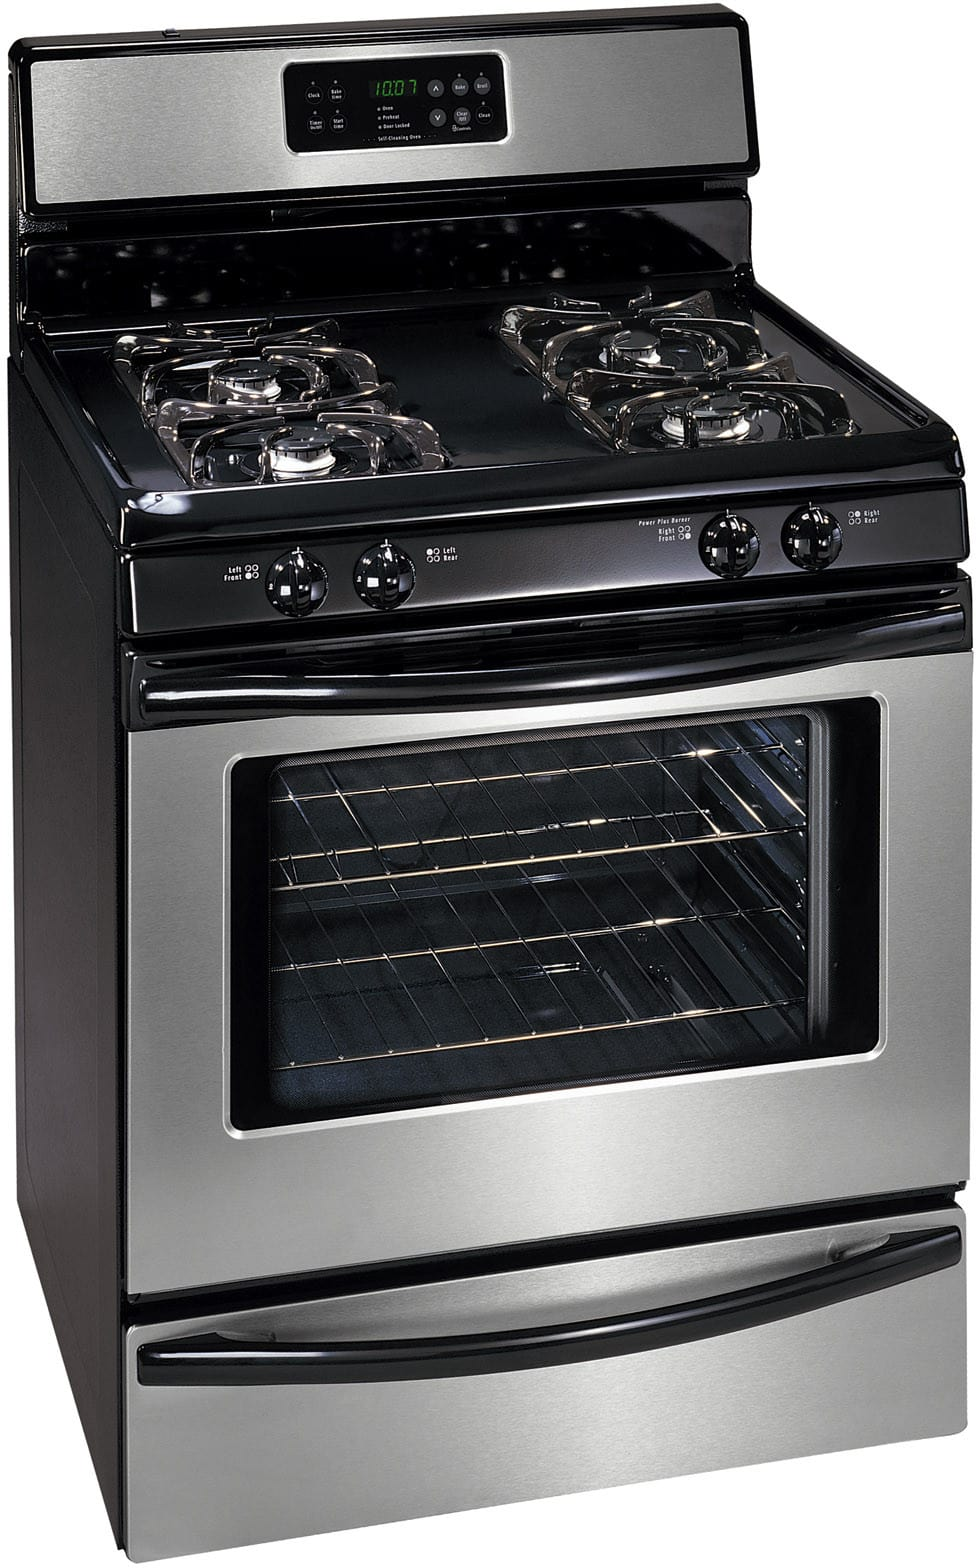 Frigidaire Fgf368gc 30 Inch Freestanding Gas Range With 4